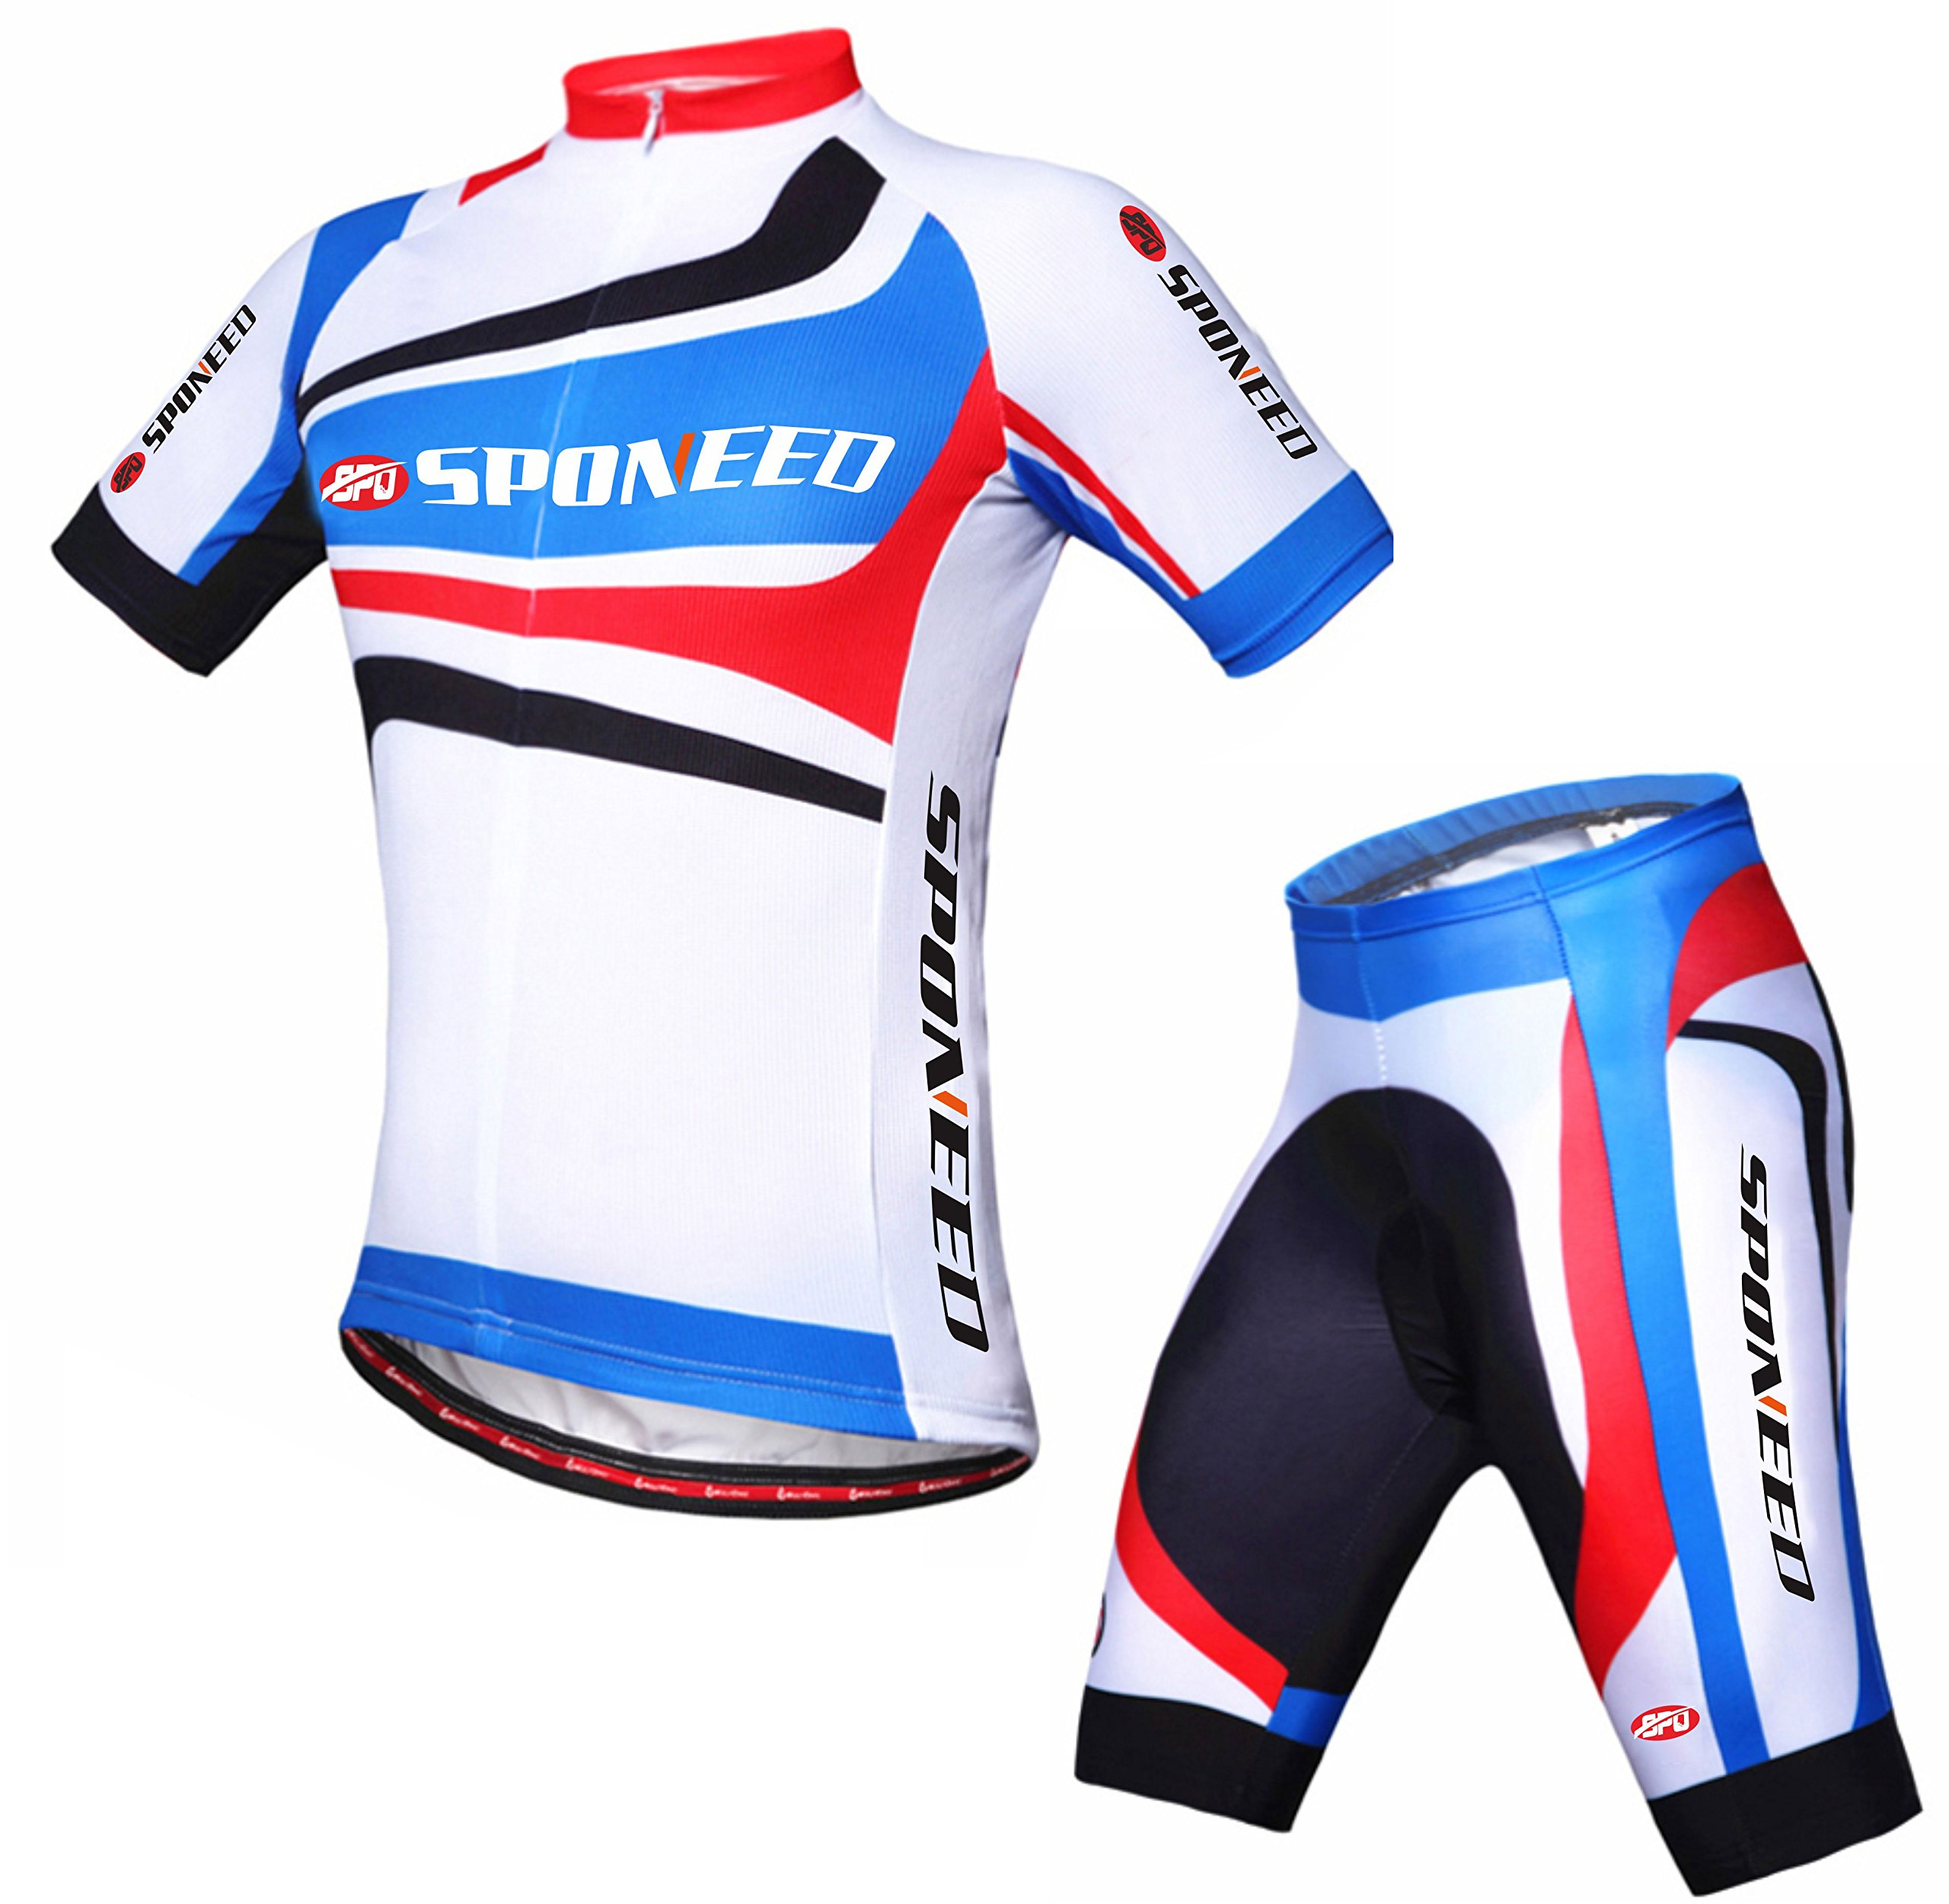 Sponeed Men's Cycle Jersey Short Pants Padded Uniforms Spin Bicycle Riding Road Cyclist Wear Small